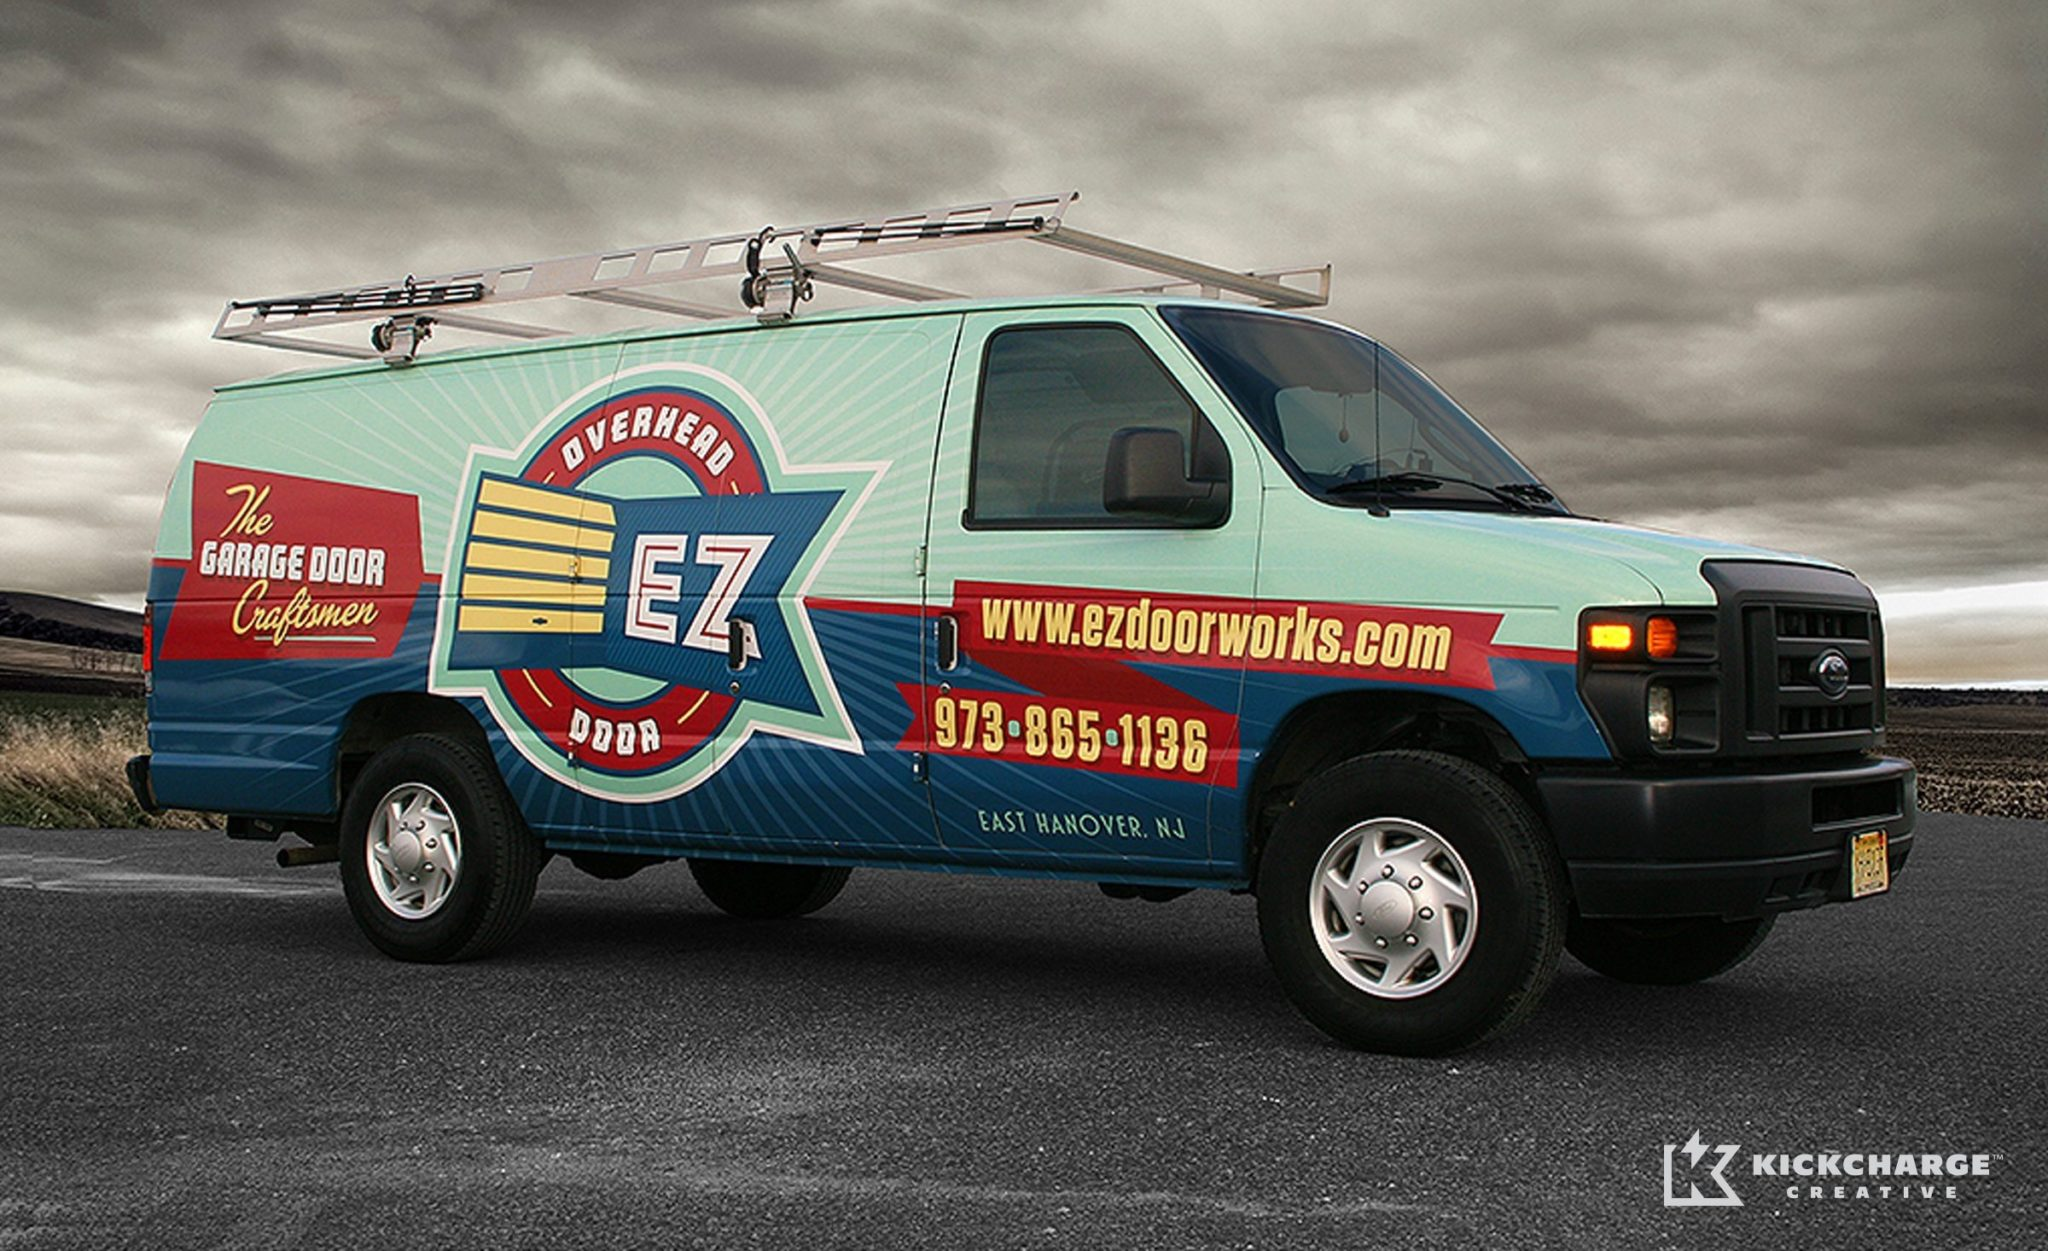 Ez overhead door kickcharge creative for Garage wraps